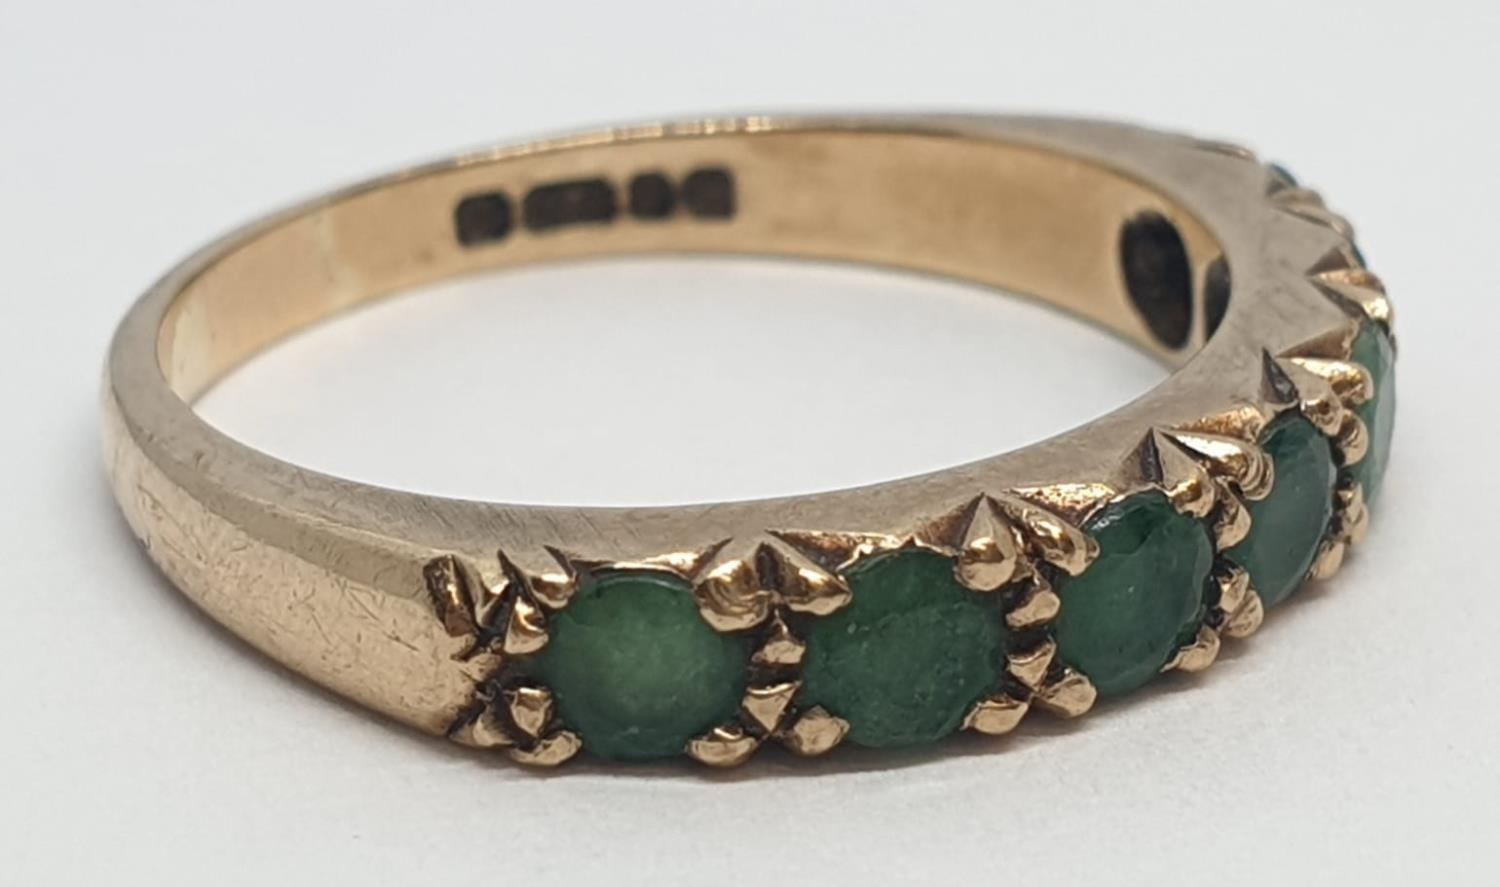 9ct Yellow gold emerald half eternity ring. Weight 2.8g, Size O. - Image 3 of 8